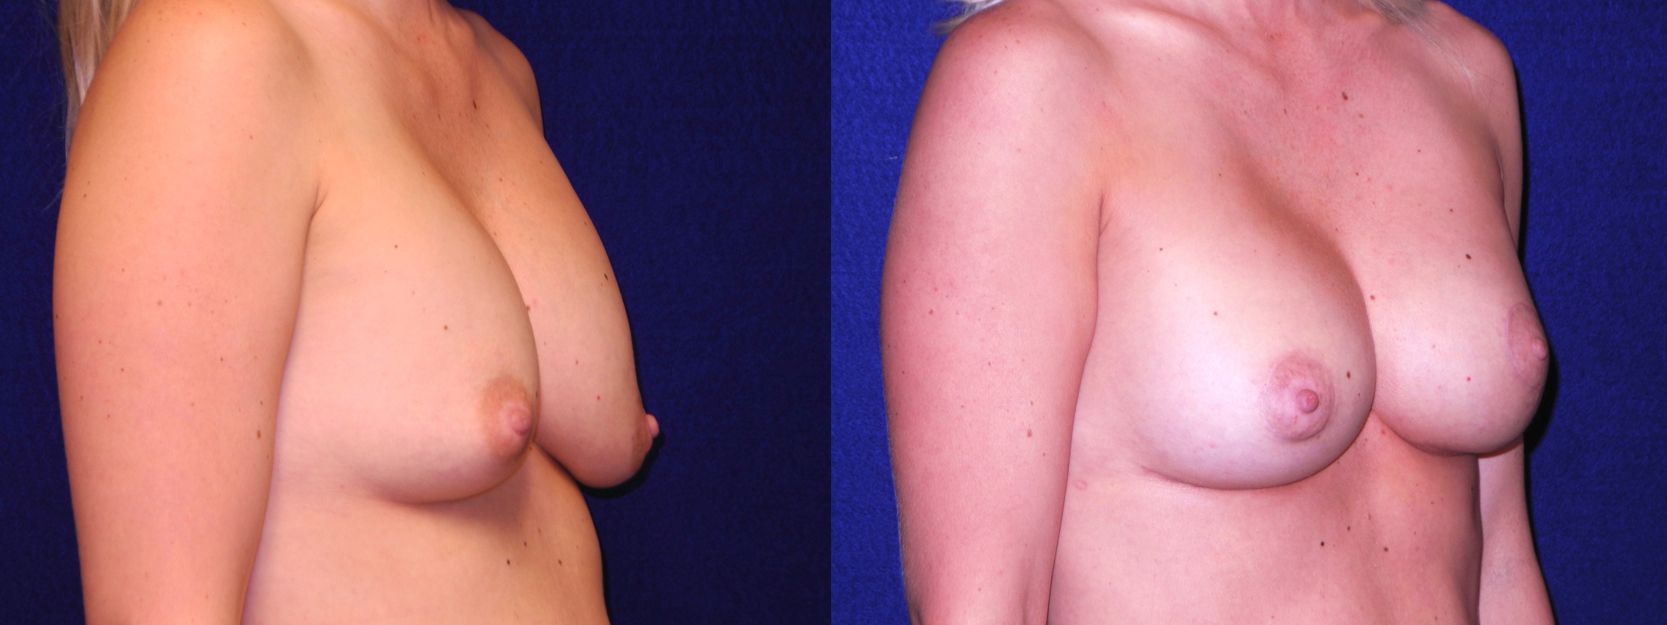 Right 3/4 View - Implant Revision and Breast Lift